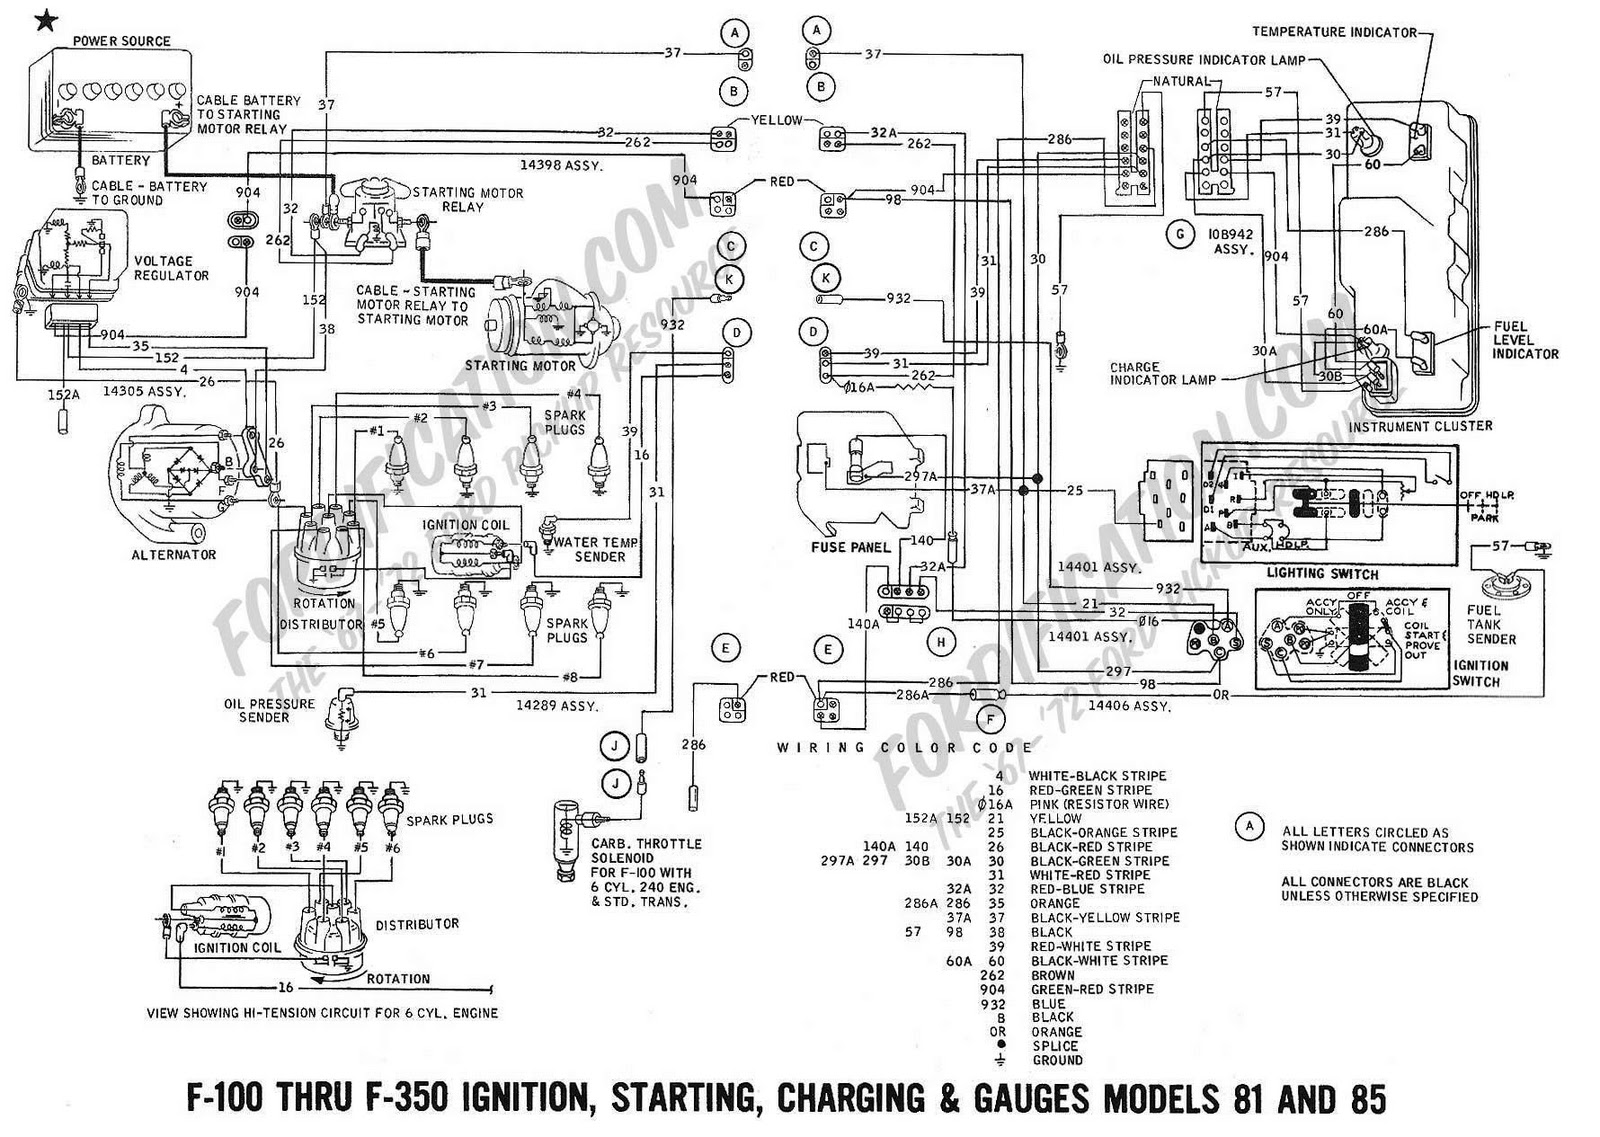 1969 Ford F100 F350 Ignition%2C Starting%2C Charging%2C And Gauges Wiring Diagram 1993 ford f250 wiring diagram 1993 ford f 250 engine \u2022 free wiring 1984 ford f250 wiring diagram at gsmportal.co